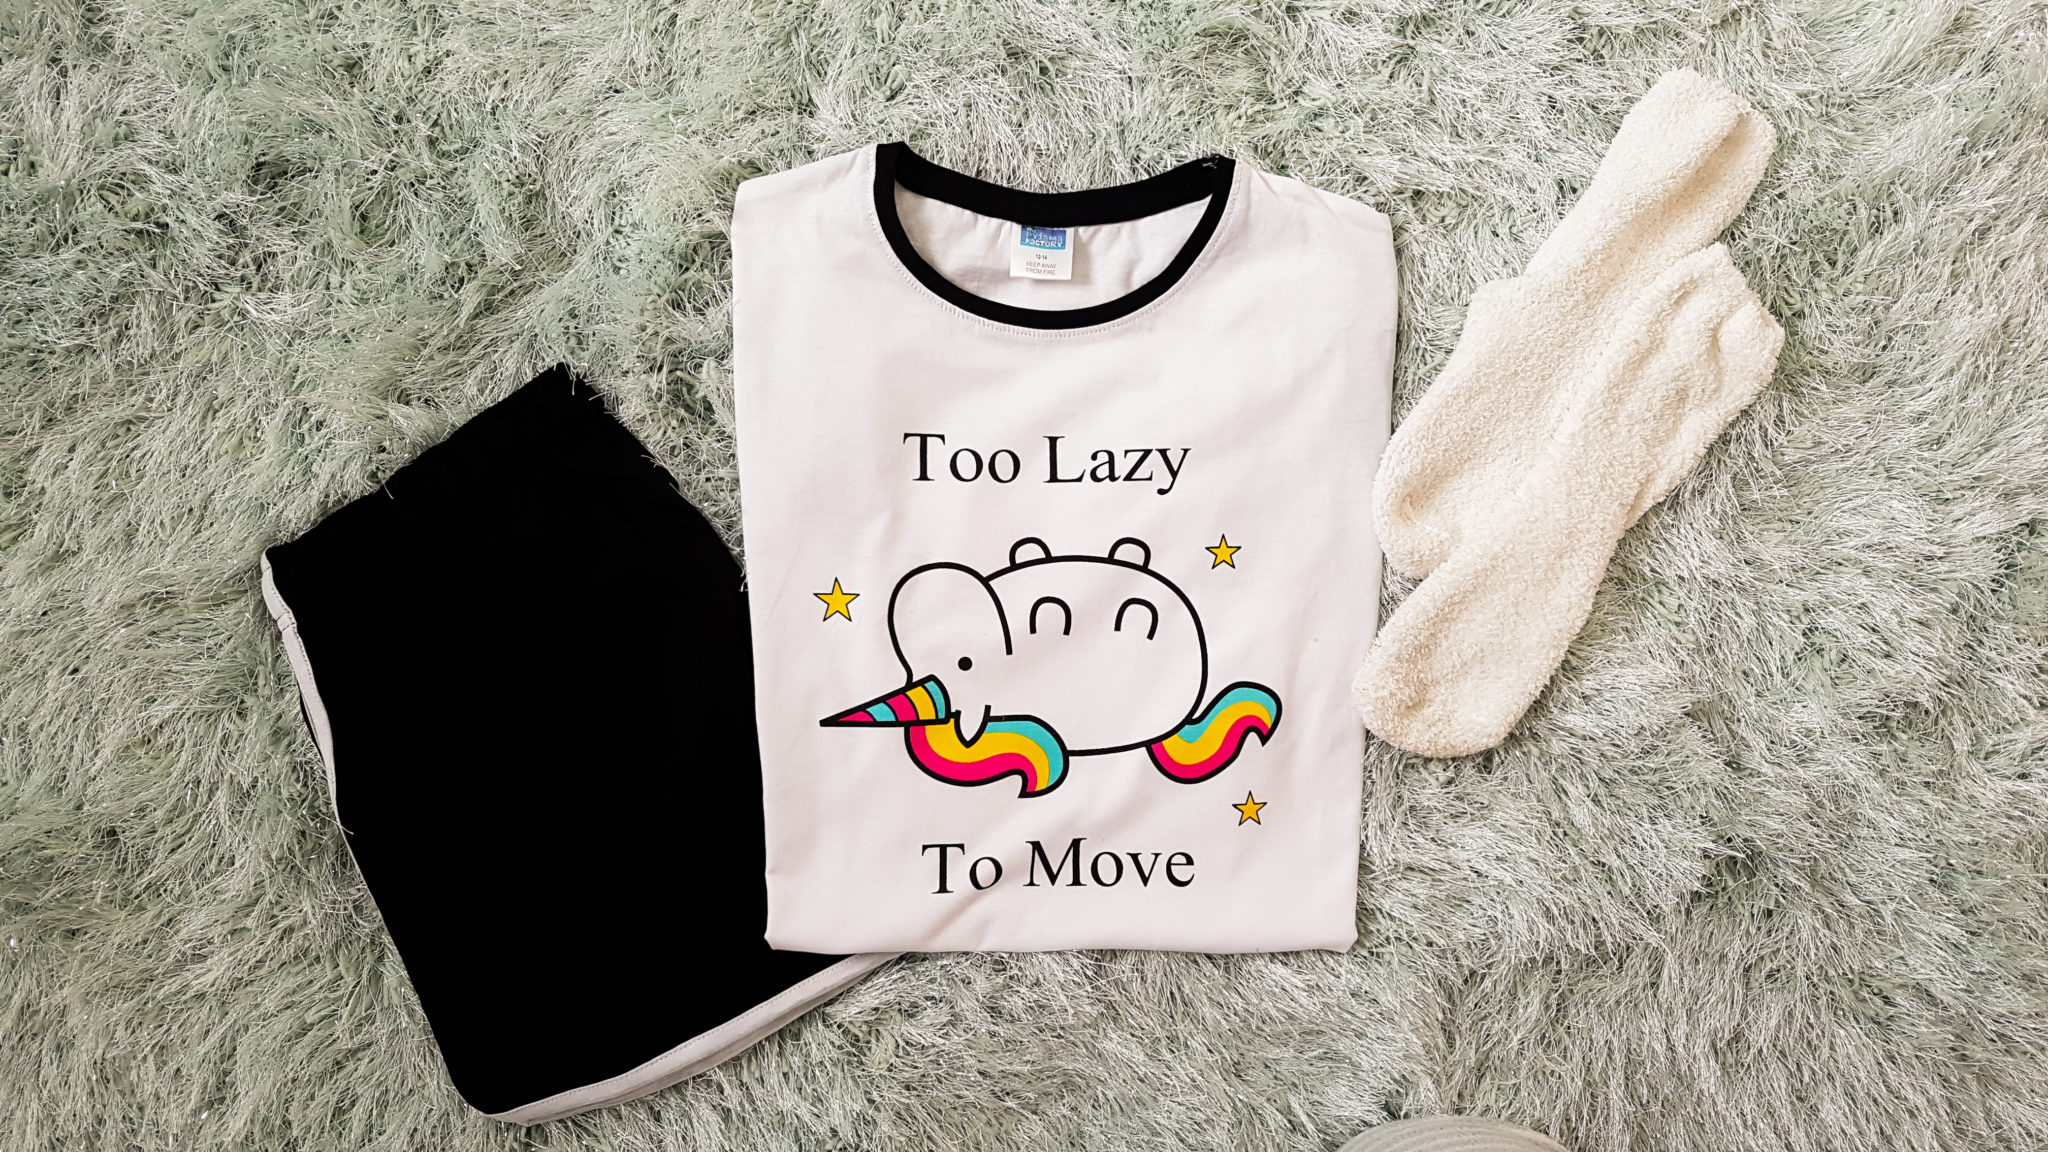 flatlay of a white pyjama top with a unicorn on and quote saying too lazy to move with black shorts and white socks on a duck egg rug